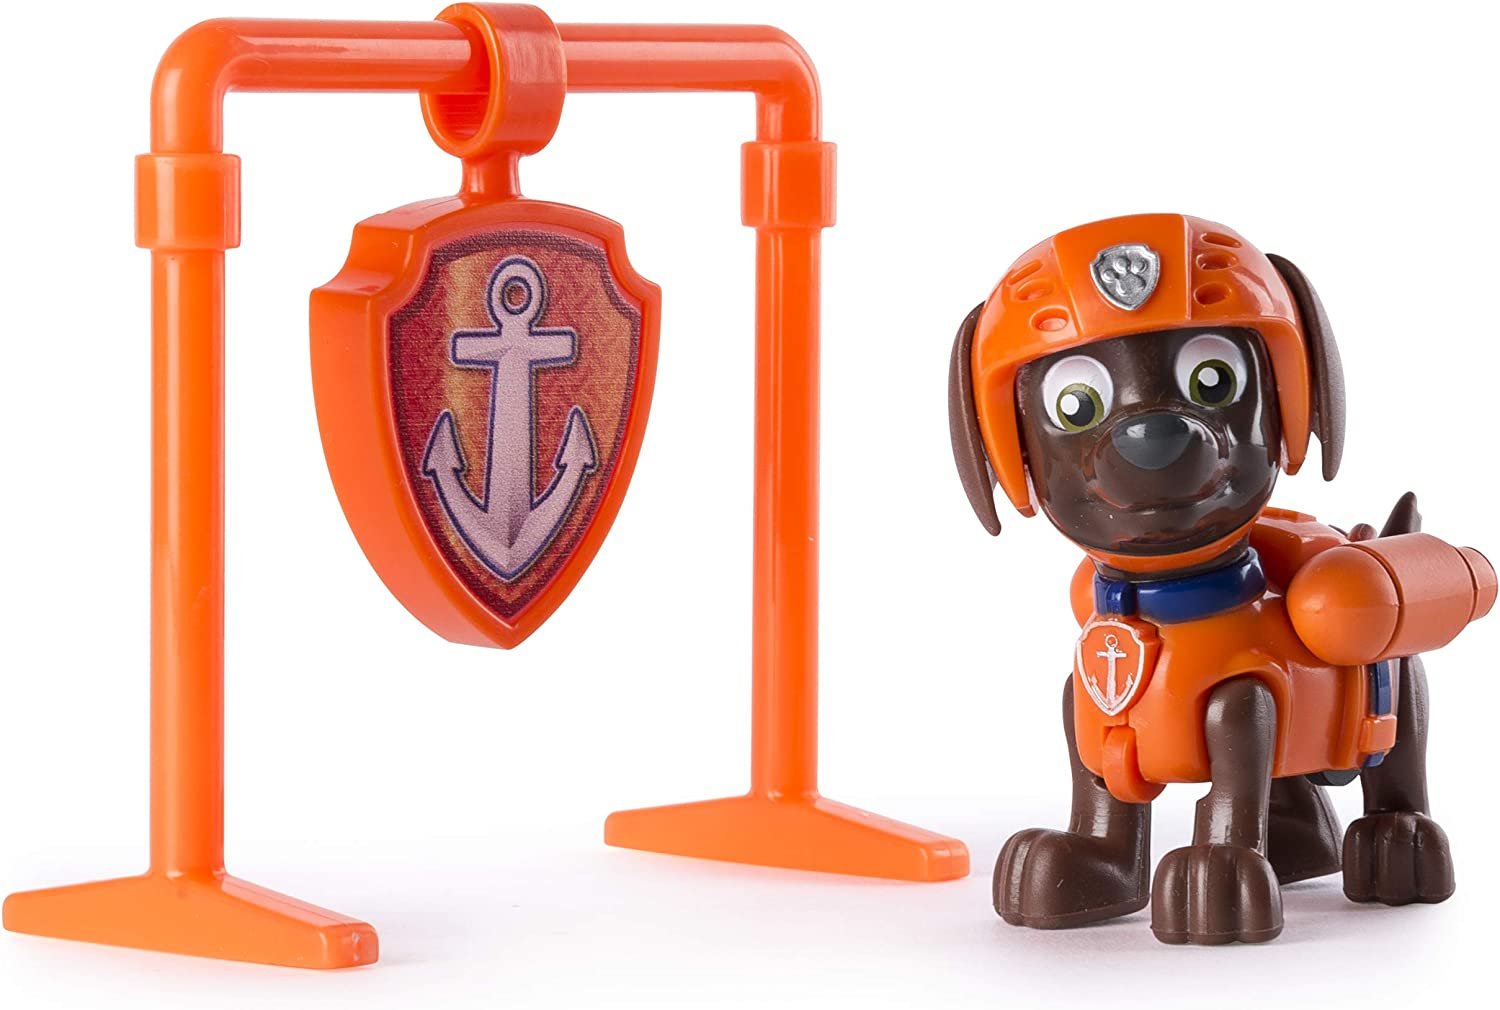 Brand New Zuma Spin Master Nickelodeon Paw Patrol Pull Back Pup Figure Toy